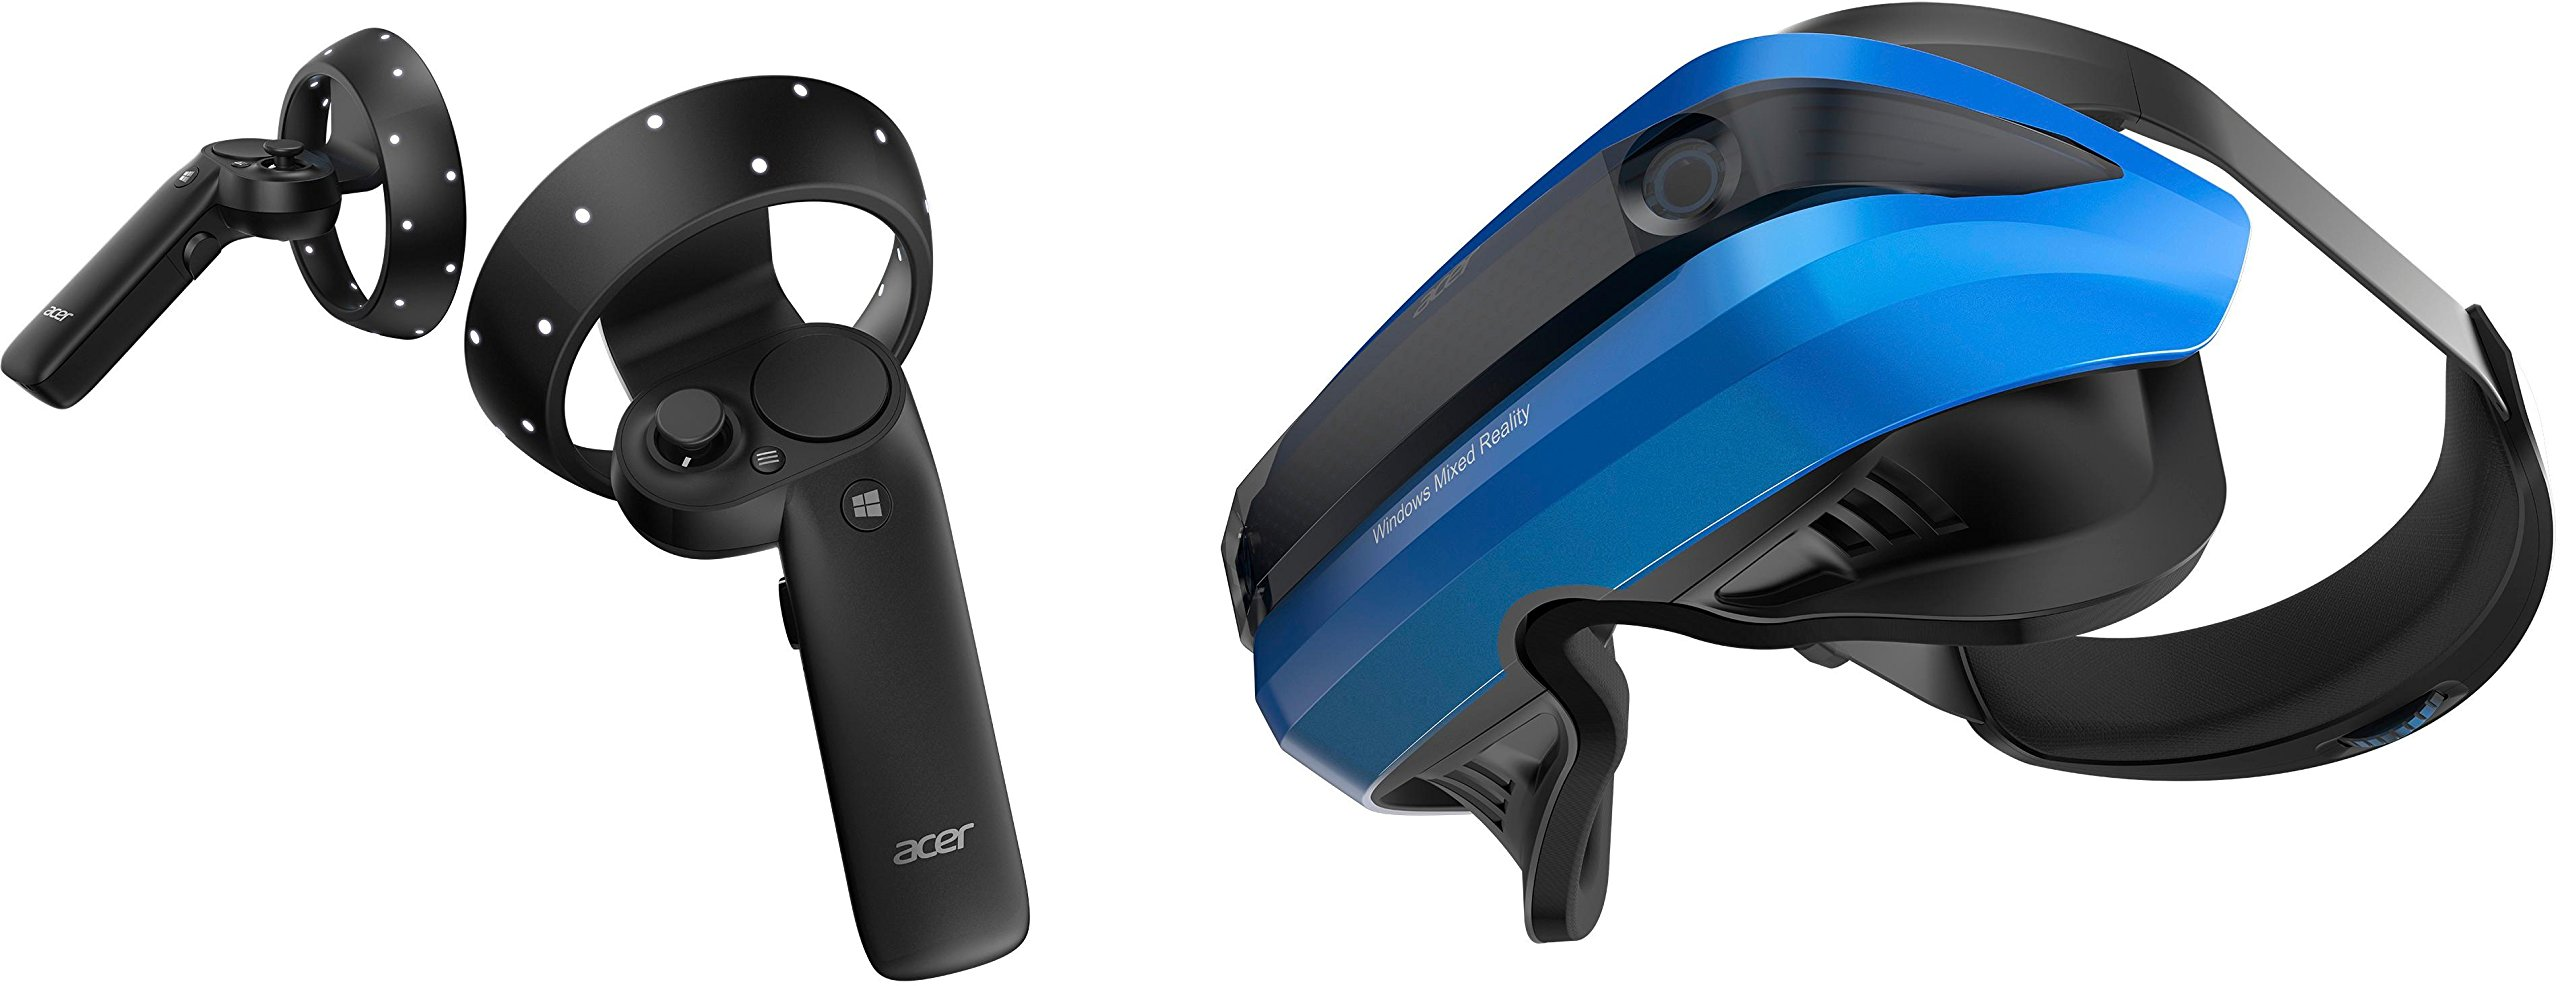 Acer Windows Mixed Reality Headset & Controllers | AH101-D8EY (Certified Refurbished)